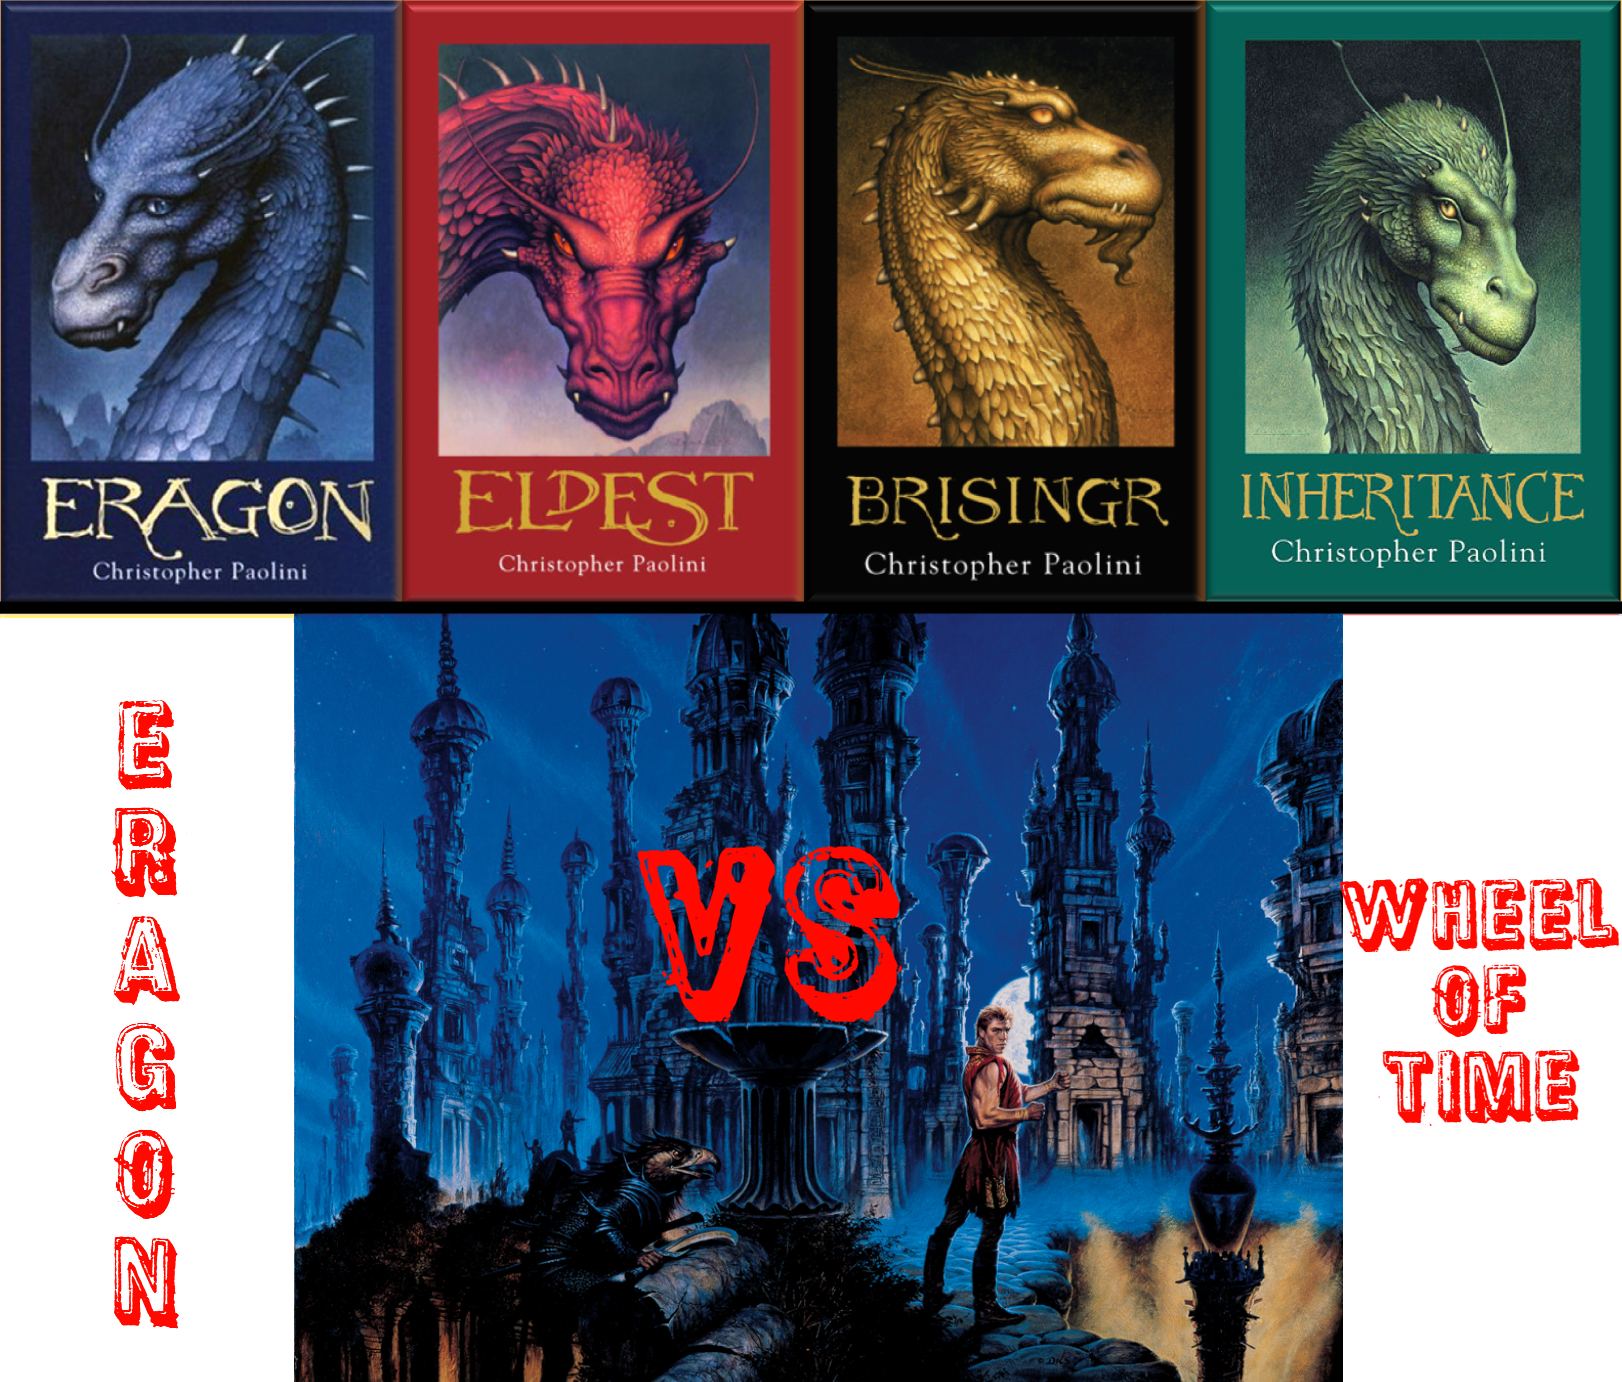 "Image of Eragon and Wheel of Time book covers with text ""Eragon vs Wheel of Time"""